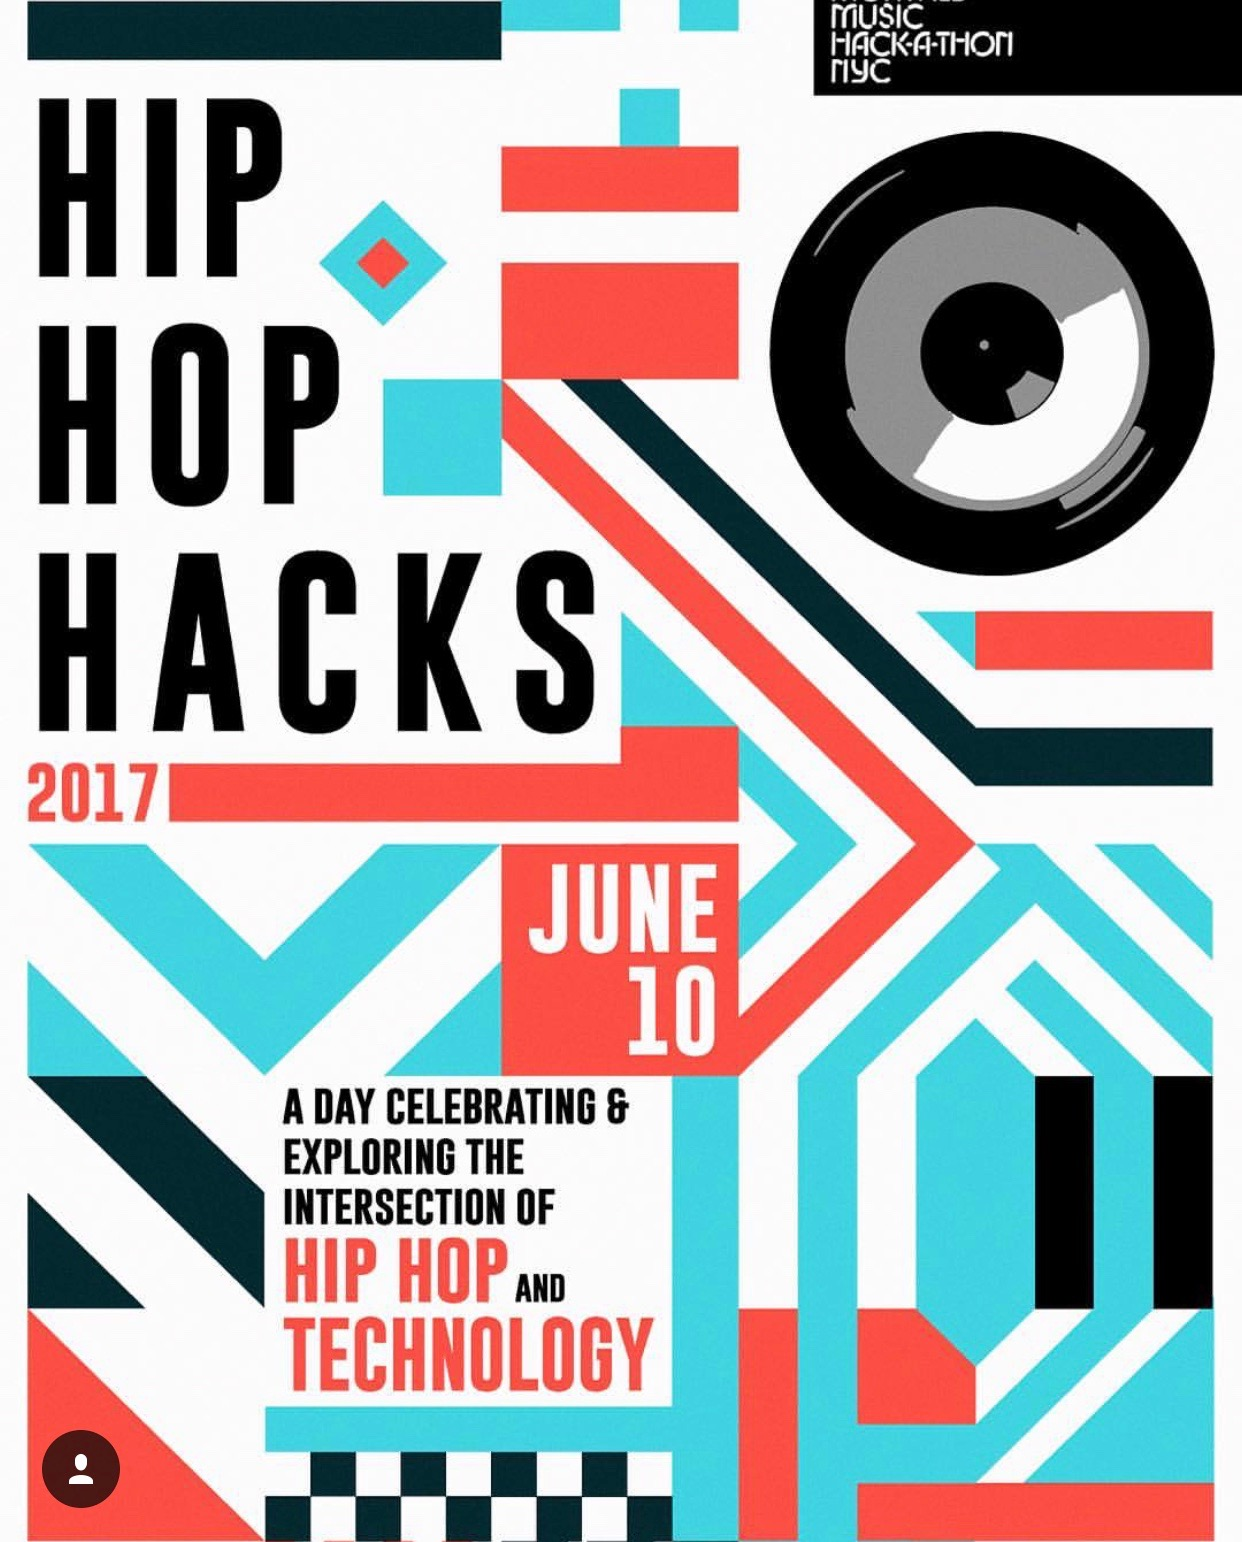 Hip Hop Hacks  - Allegra Jane assisted in facilitating Hip Hop Hacks host at Spotify headquarters.